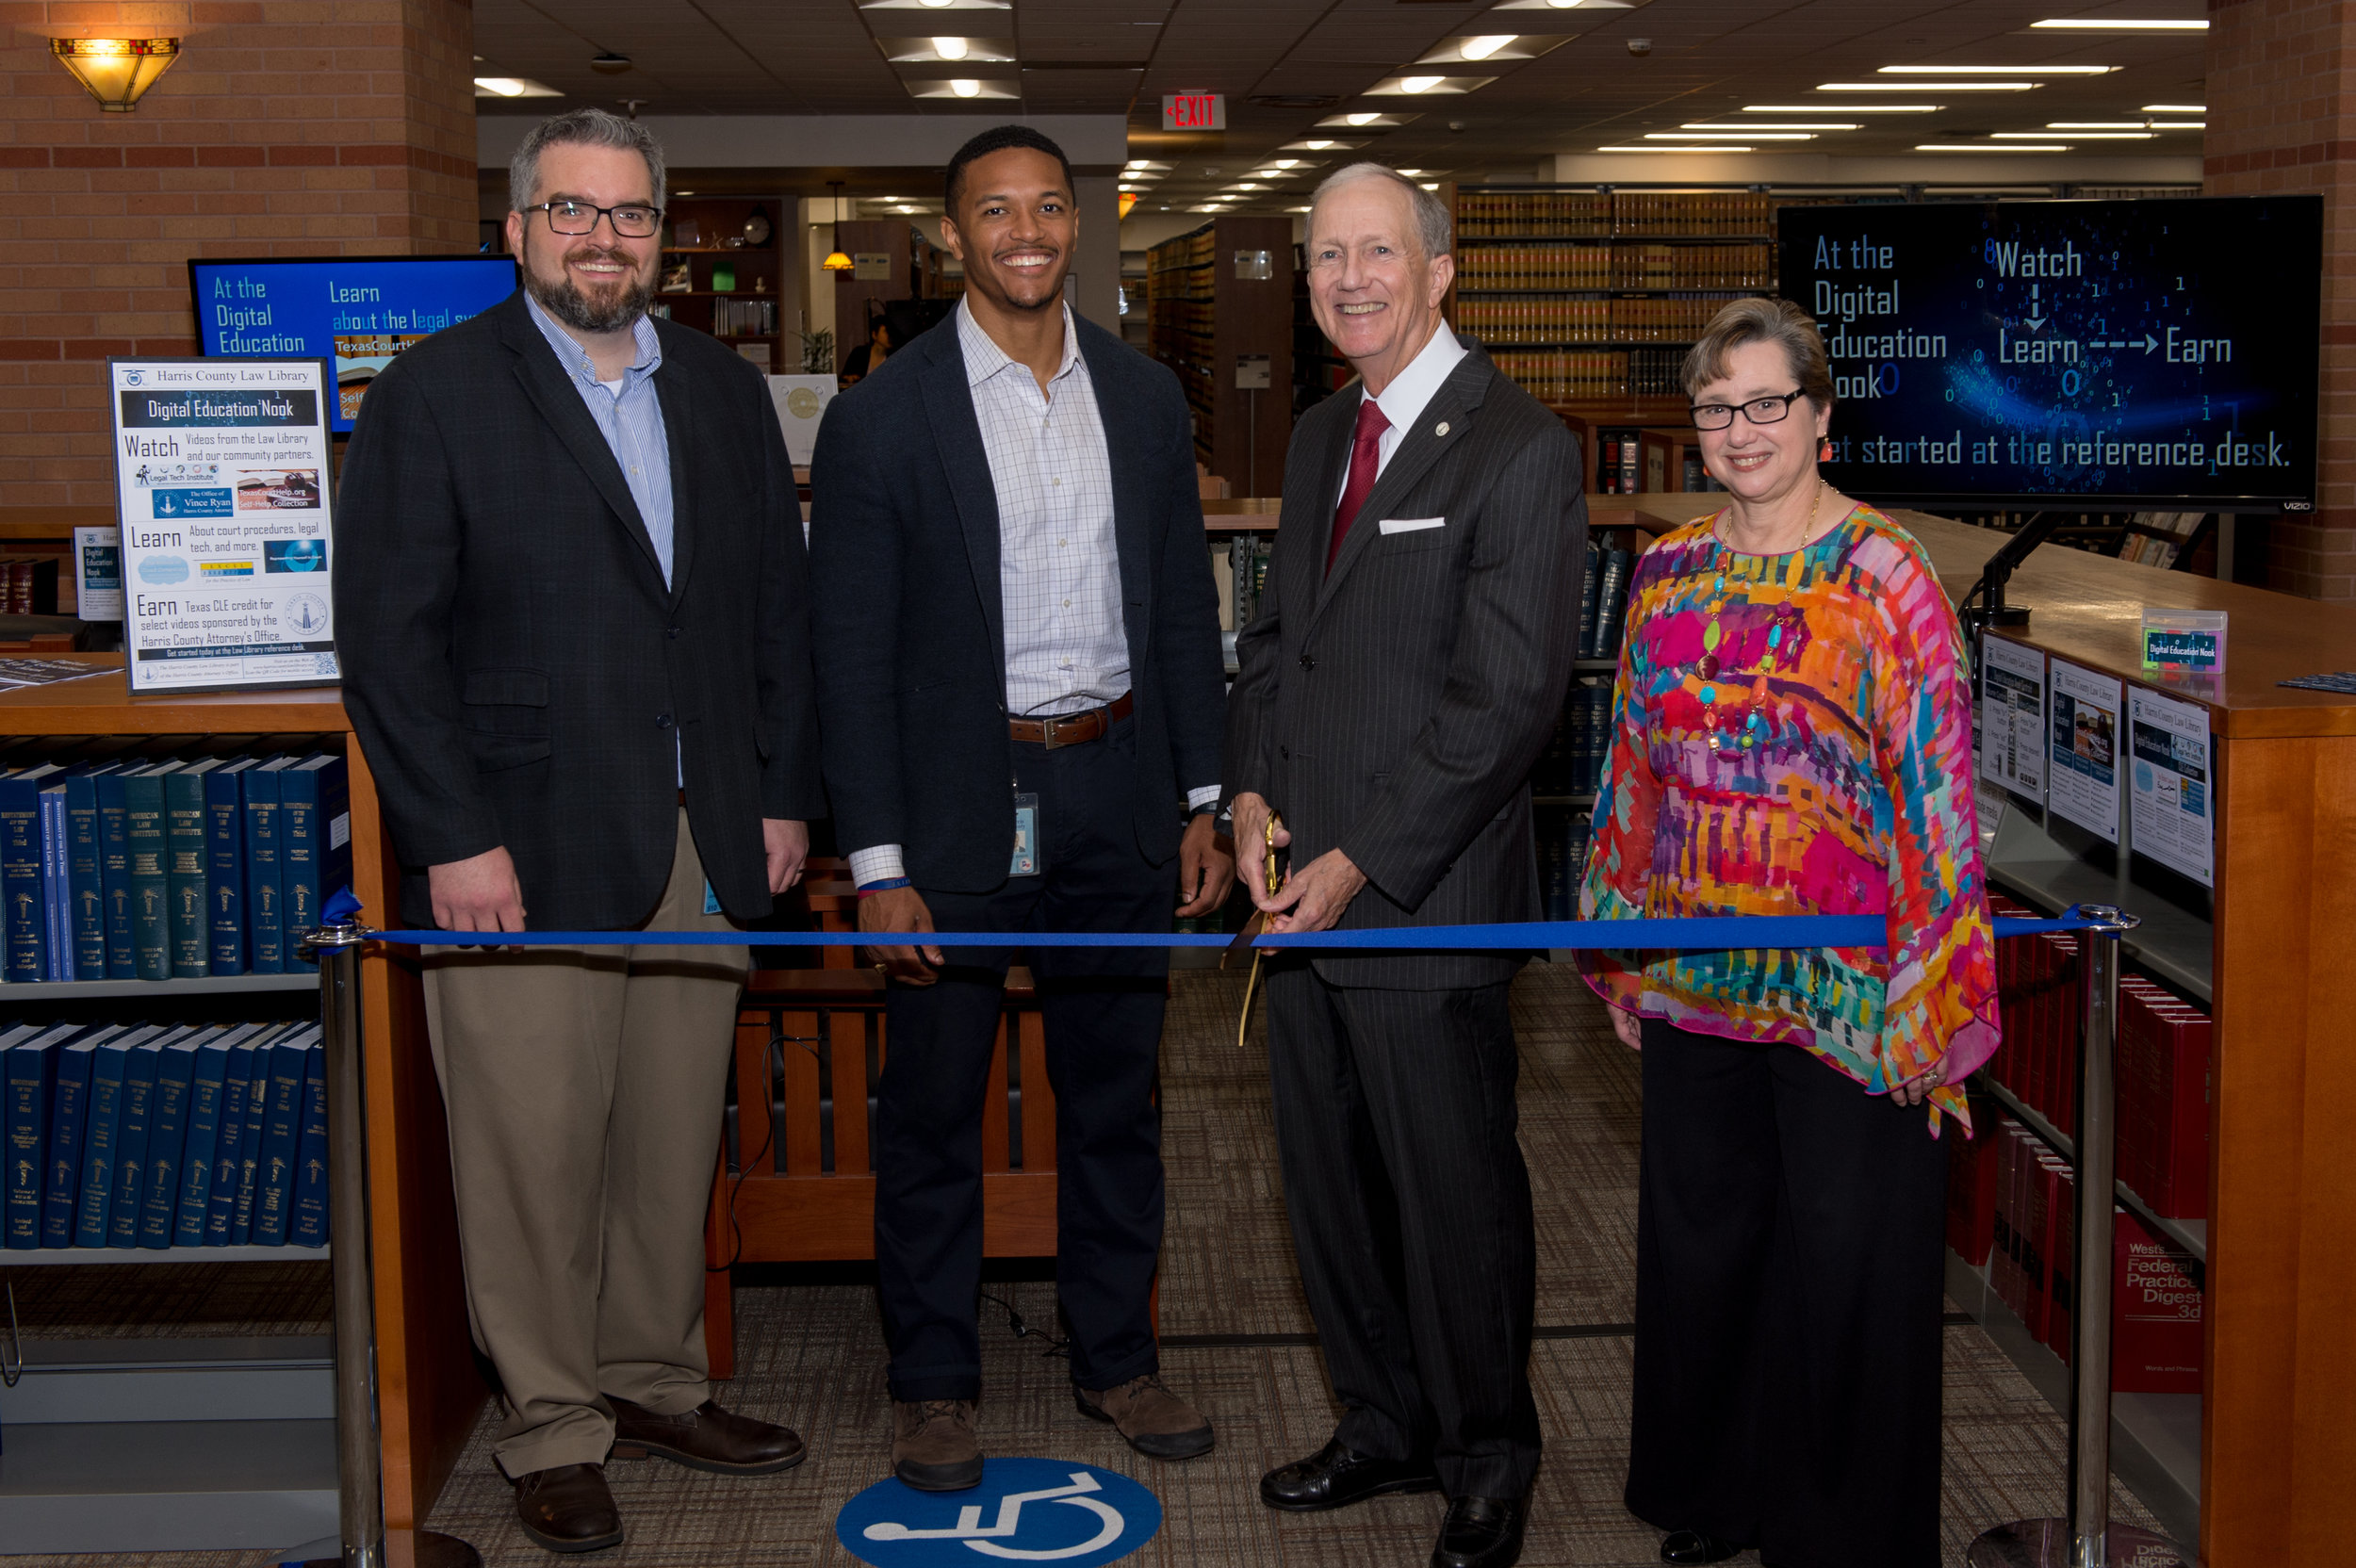 Harris County Attorney Vince Ryan  {center right}  cut the ribbon on the new addition with Harris County Law Library Director Mariann Sears  {right} , Law Library Deputy Director Joseph Lawson {left} , and Gabe Baker  {center left} , Community Outreach Specialist from the Harris County Judge's Office.